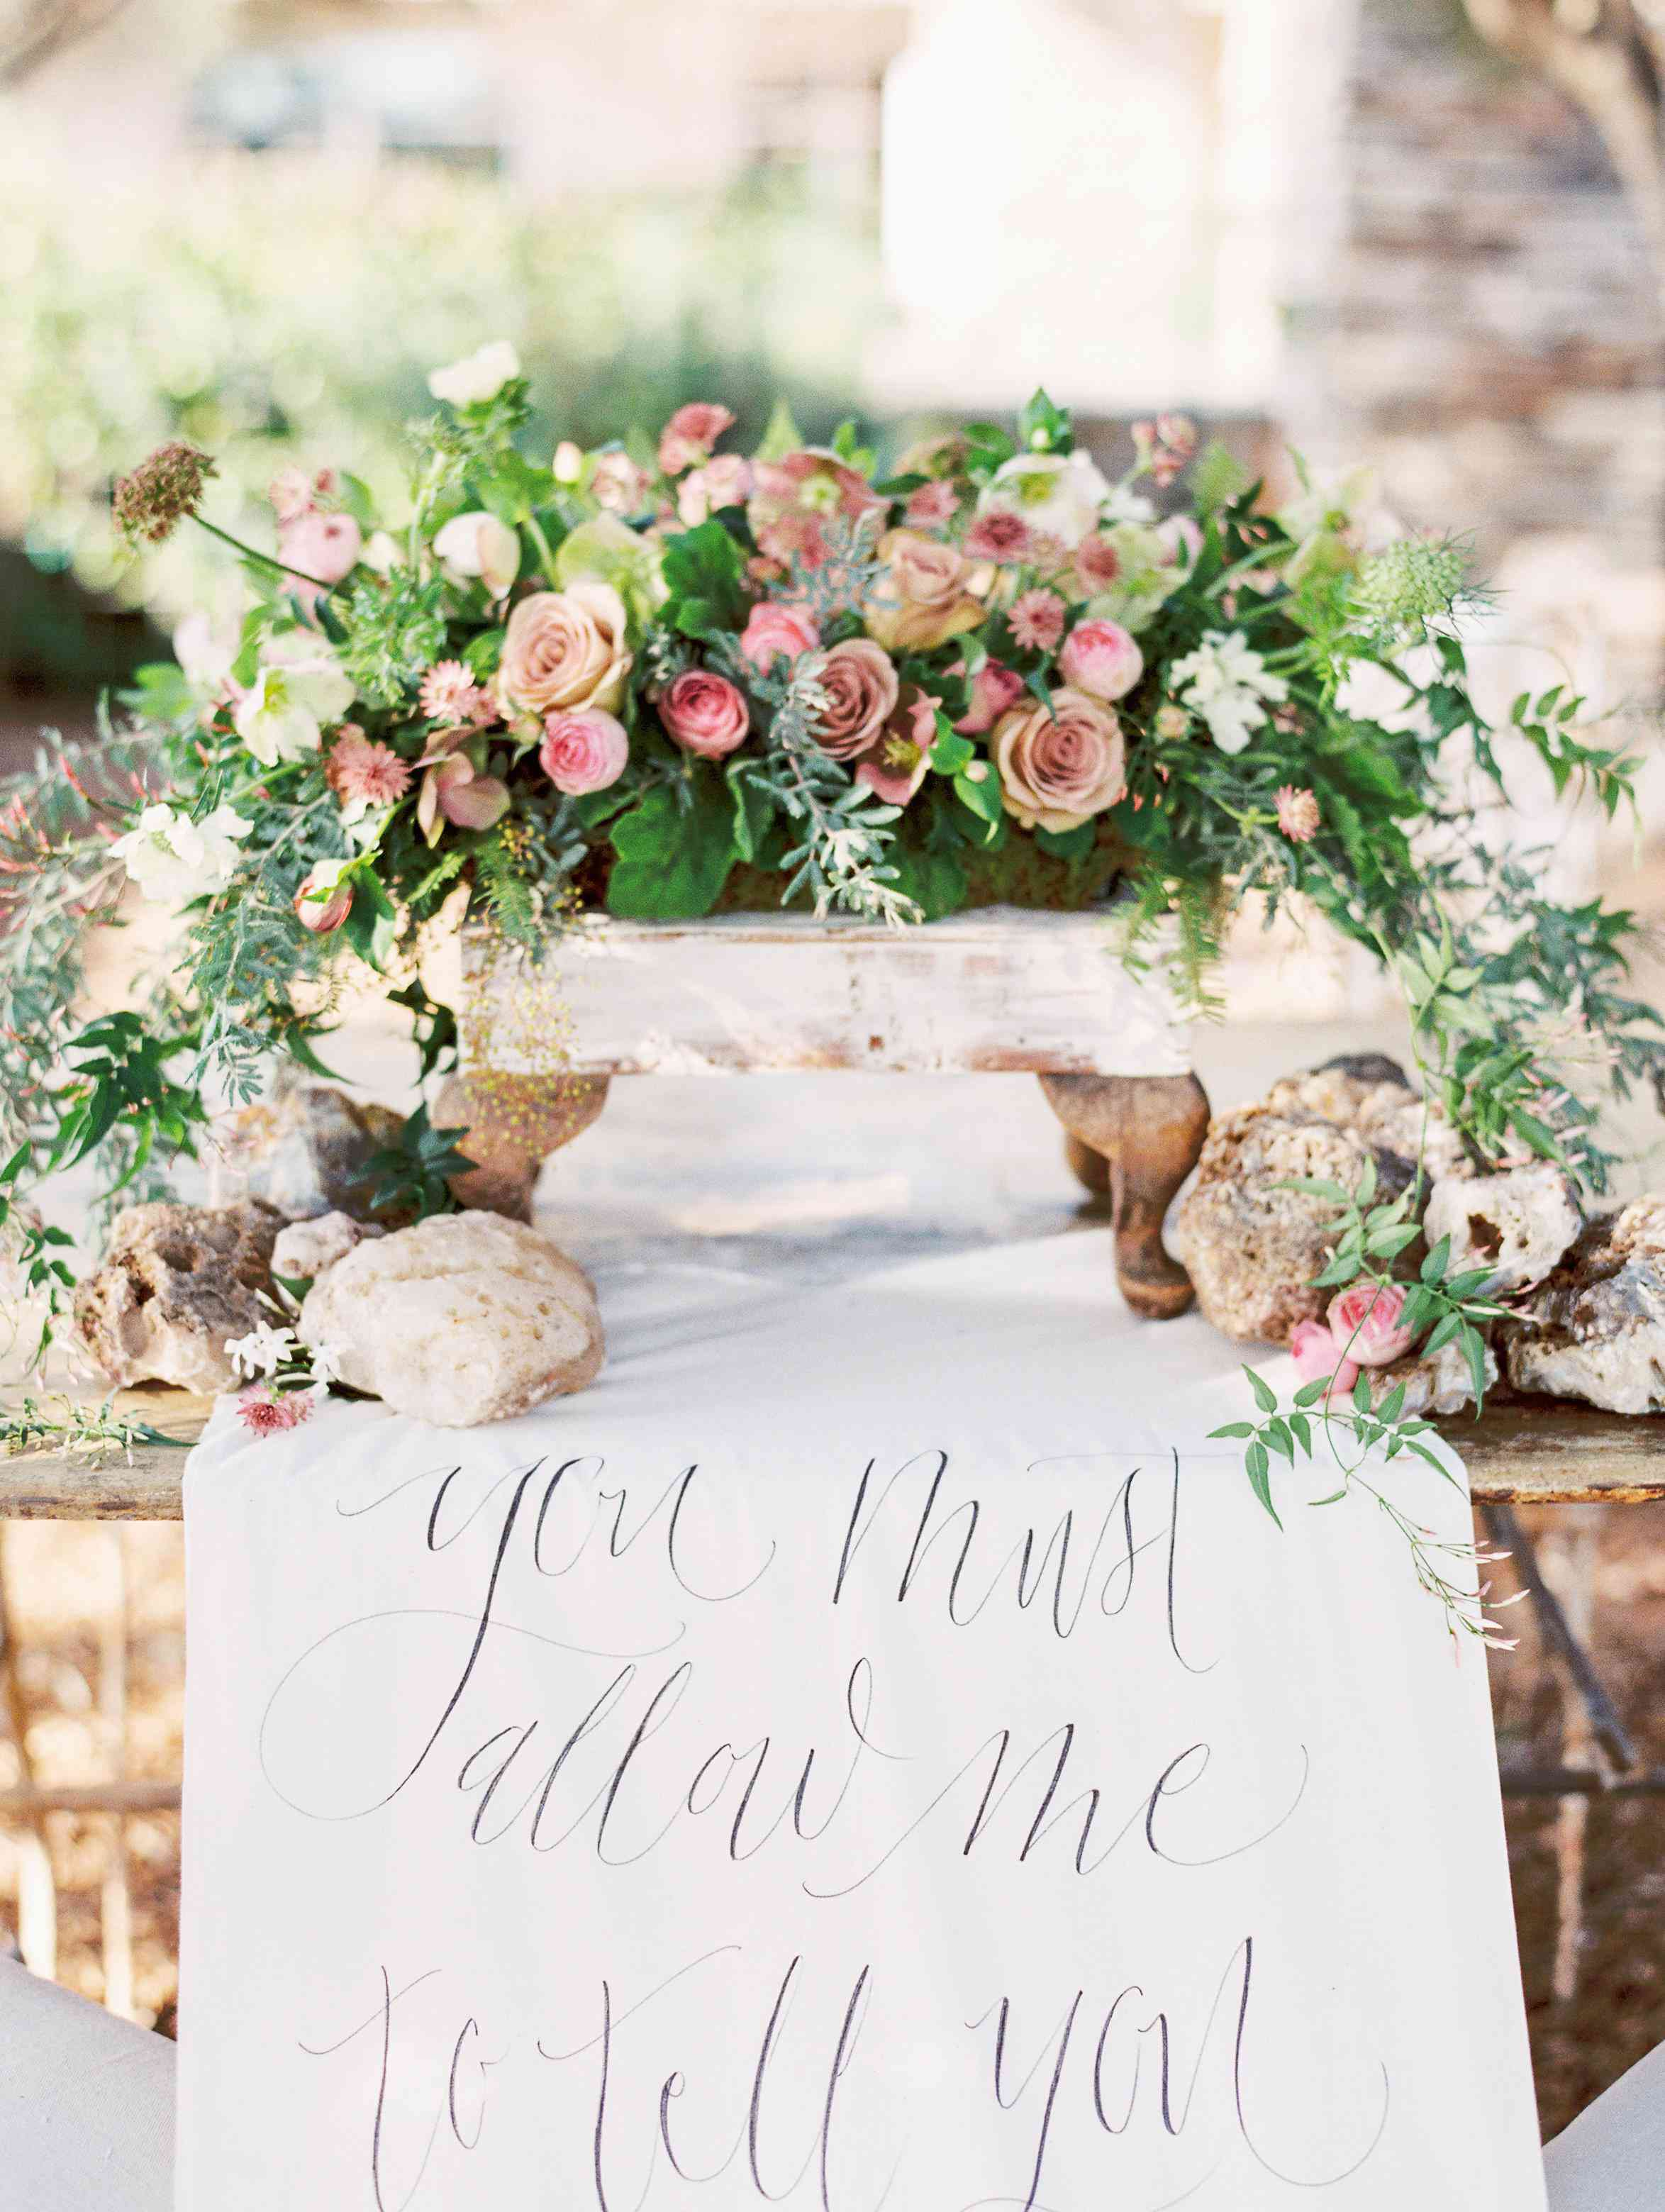 Flowers and table runner calligraphy sign.